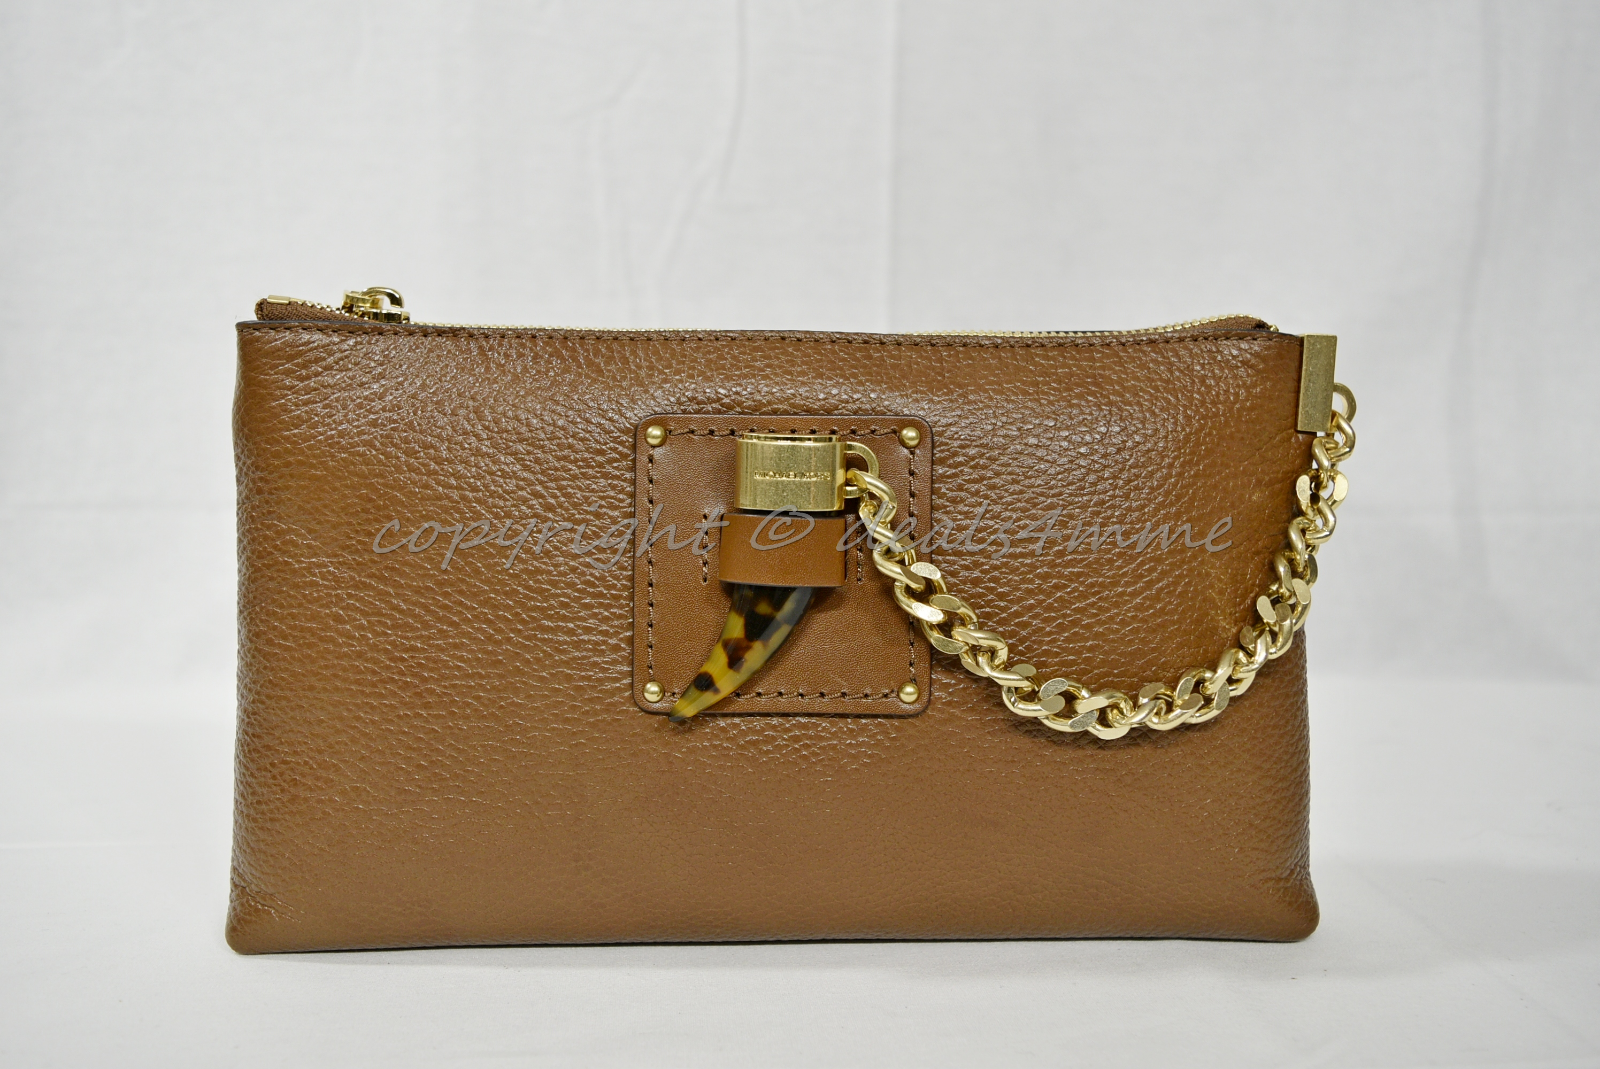 b48cee7a172704 NWT! Michael Kors James Large Leather Clutch and 50 similar items. S l1600